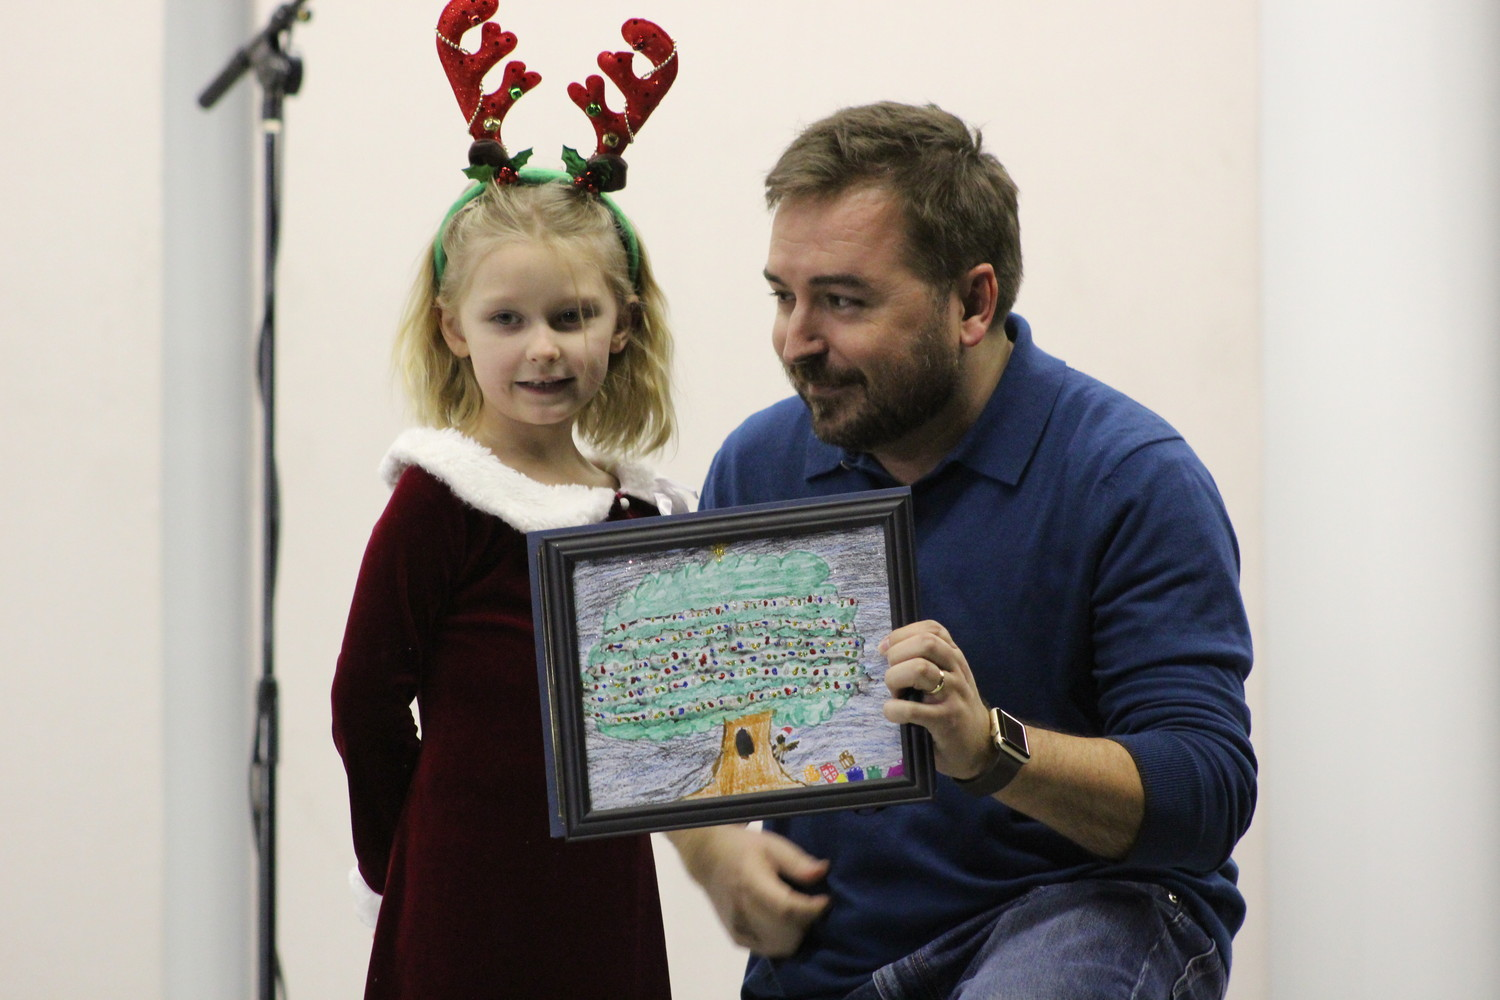 Jemma Smith, third place winner of the Tree Coloring Contest poses with Cedar Park Mayor Matt Powell.